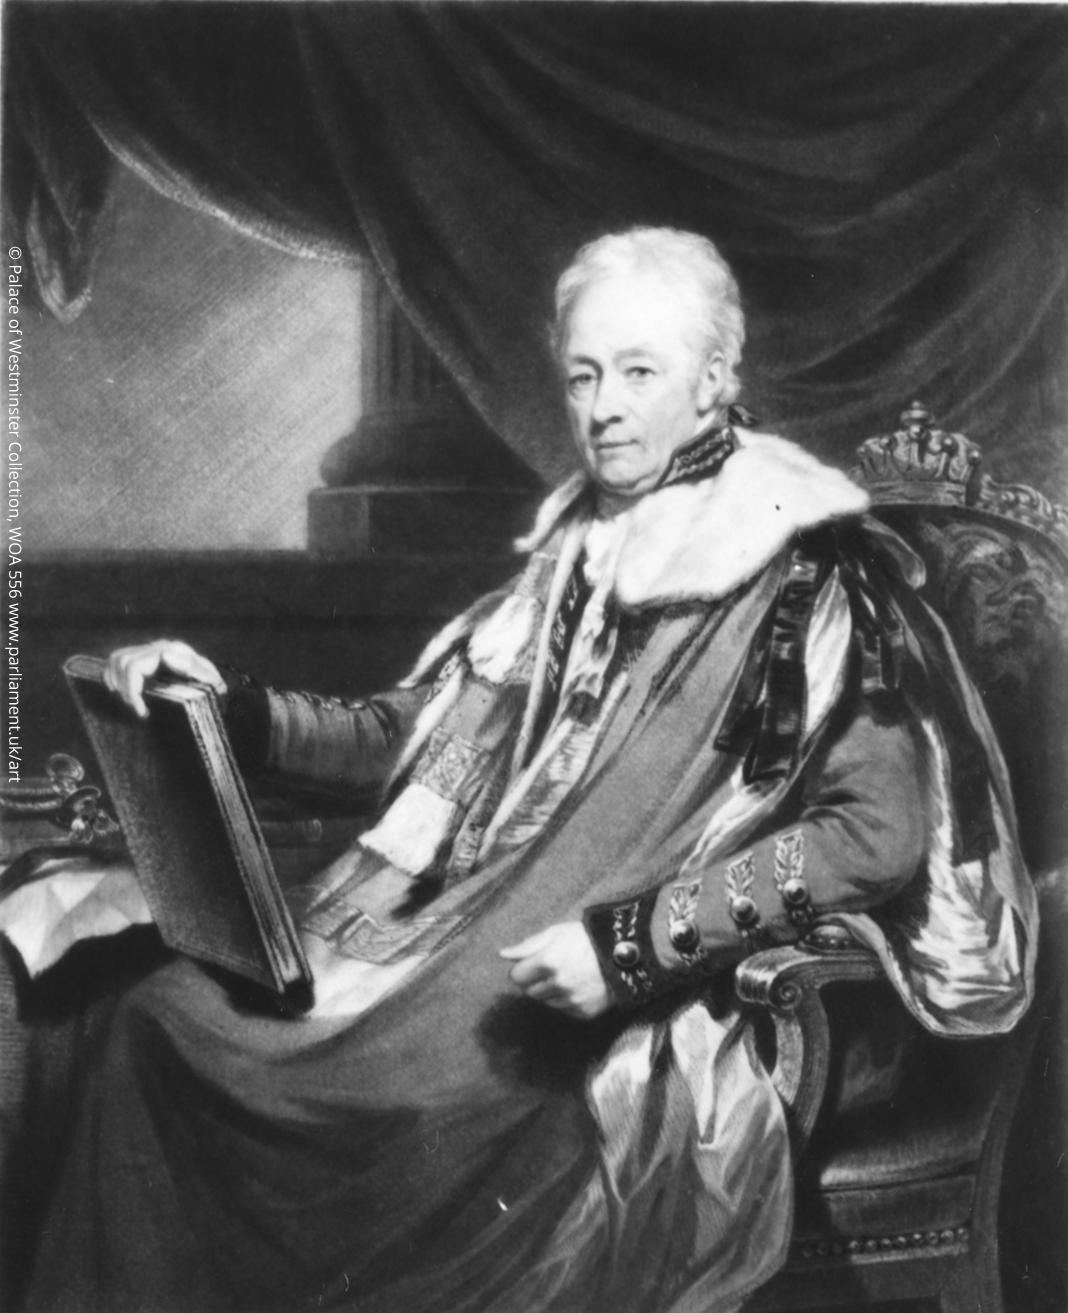 'Earl William Harcourt (1743-1830)', monochrome mezotint by Samuel William Reynolds (the Elder). © Palace of Westminster Collection, WOA 556 www.parliament.uk/art